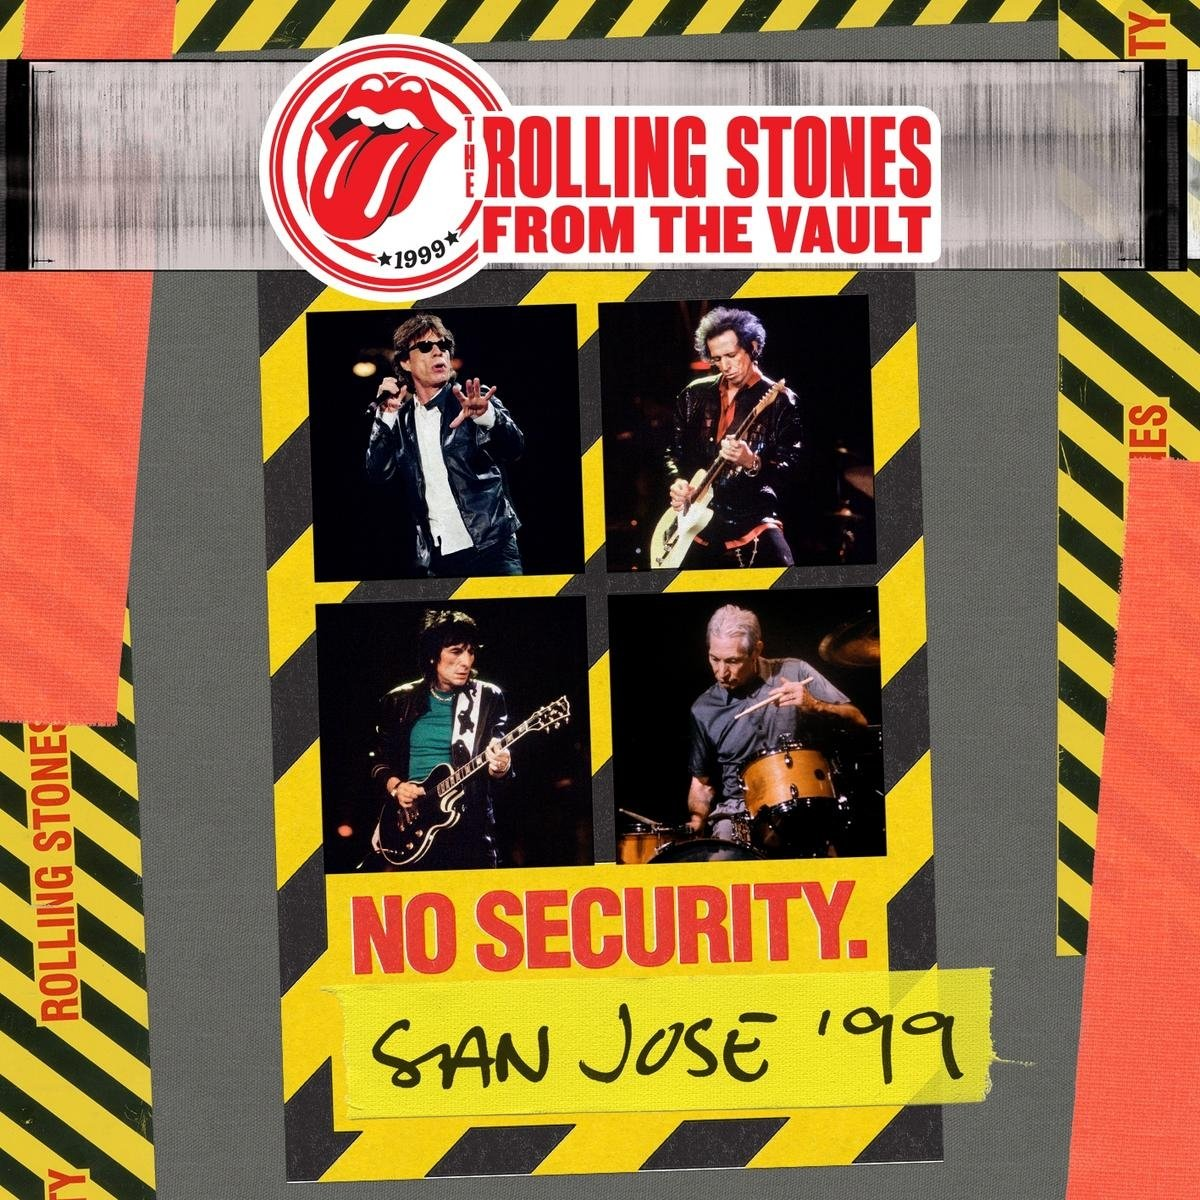 The Rolling Stones - From The Vault: No Security. San Jose '99 [DVD/2CD] by Eagle Vision